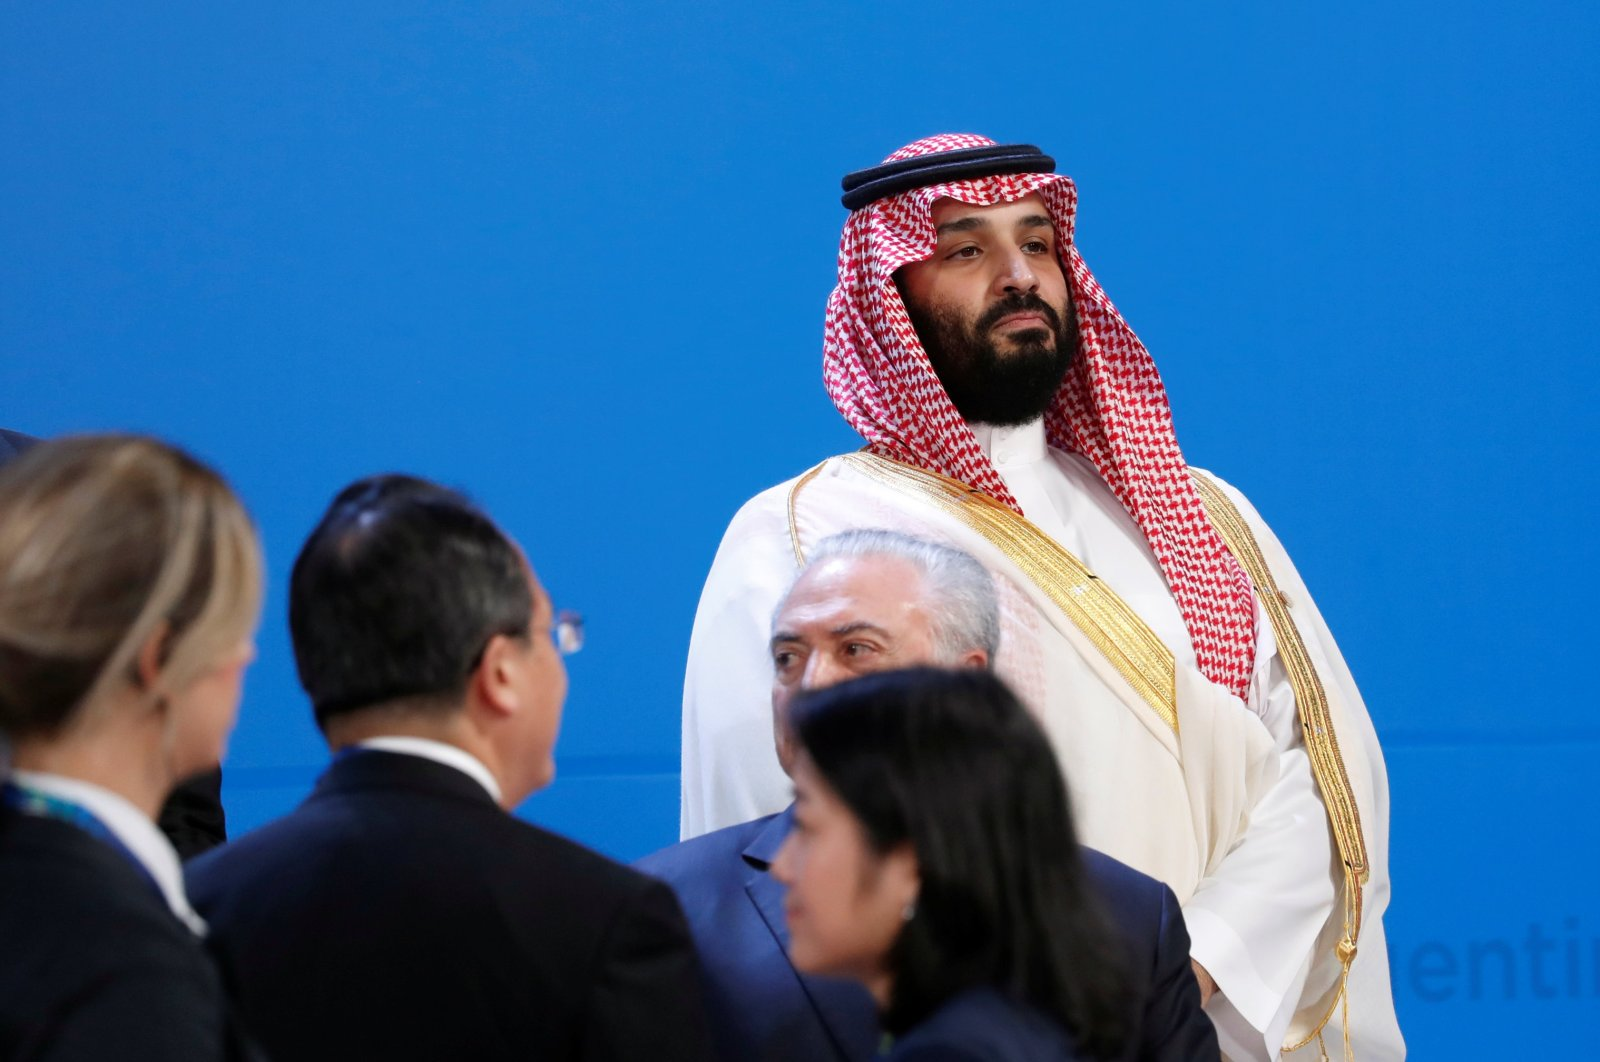 Saudi Crown Prince Mohammed bin Salman looks out as leaders arrive for a family photo at the G20 summit, Buenos Aires, Nov. 30, 2018. (REUTERS Photo)